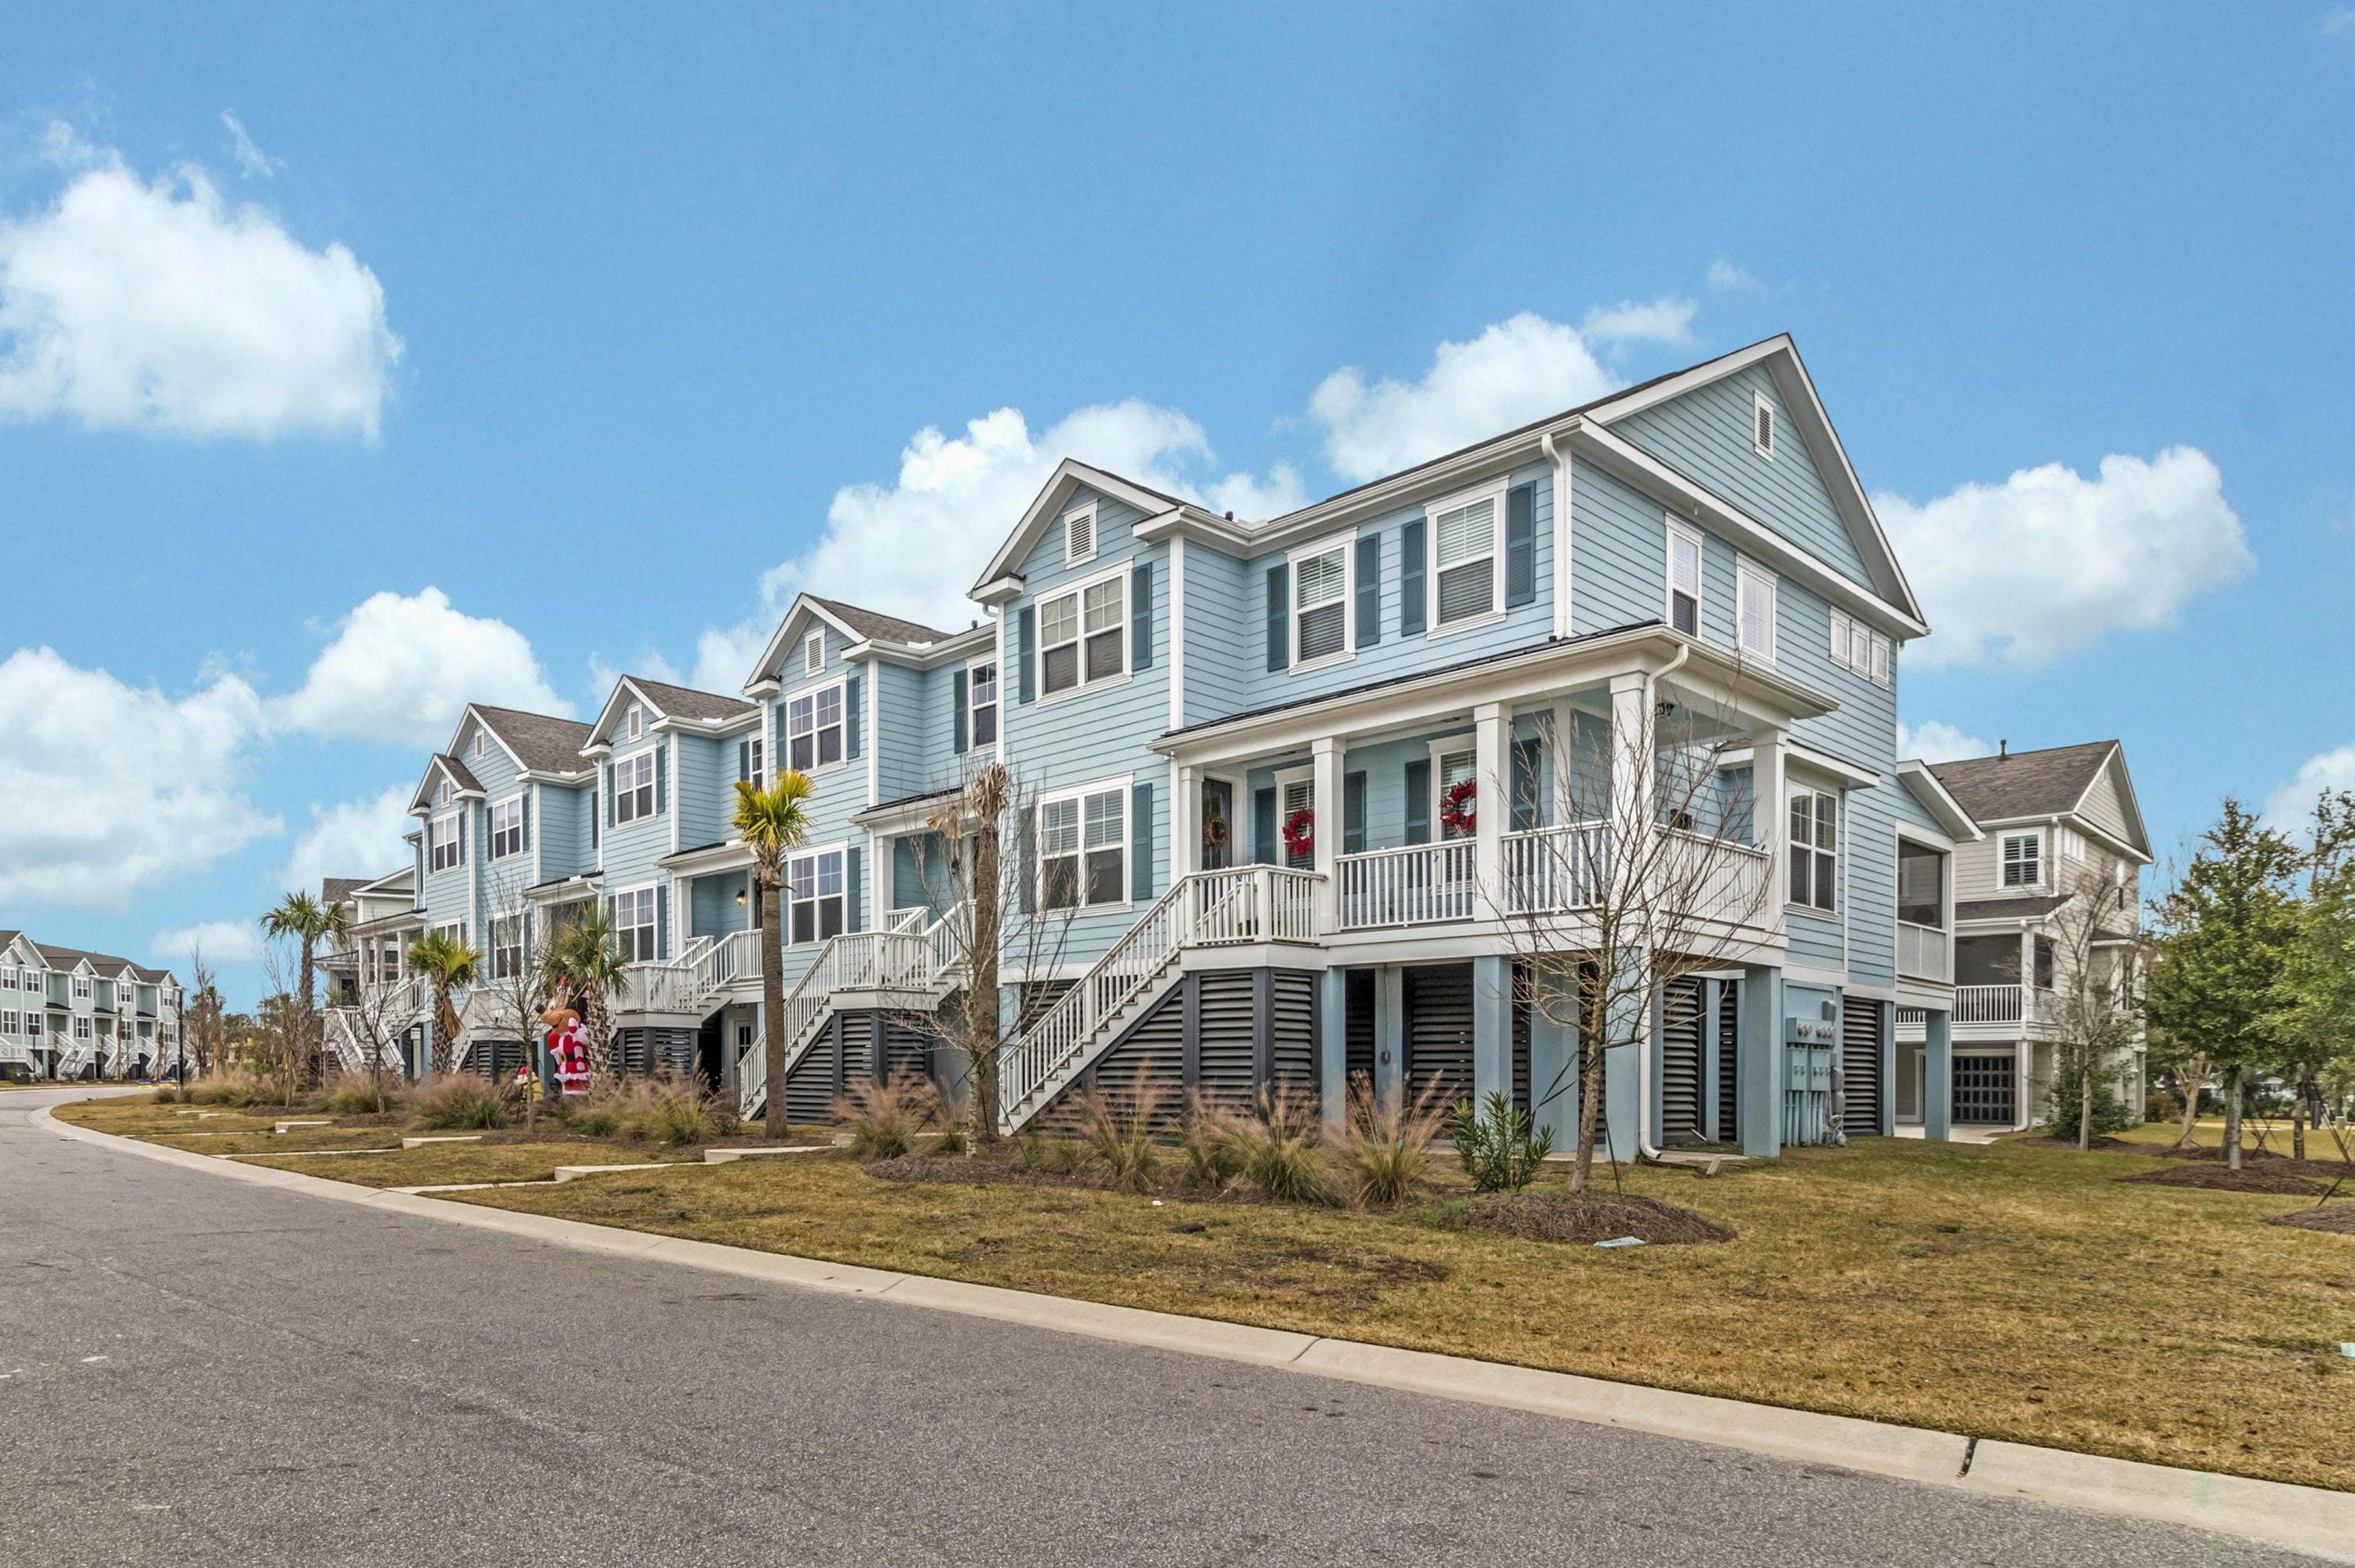 Oyster Point Homes For Sale - 1605 Prince Edward, Mount Pleasant, SC - 7